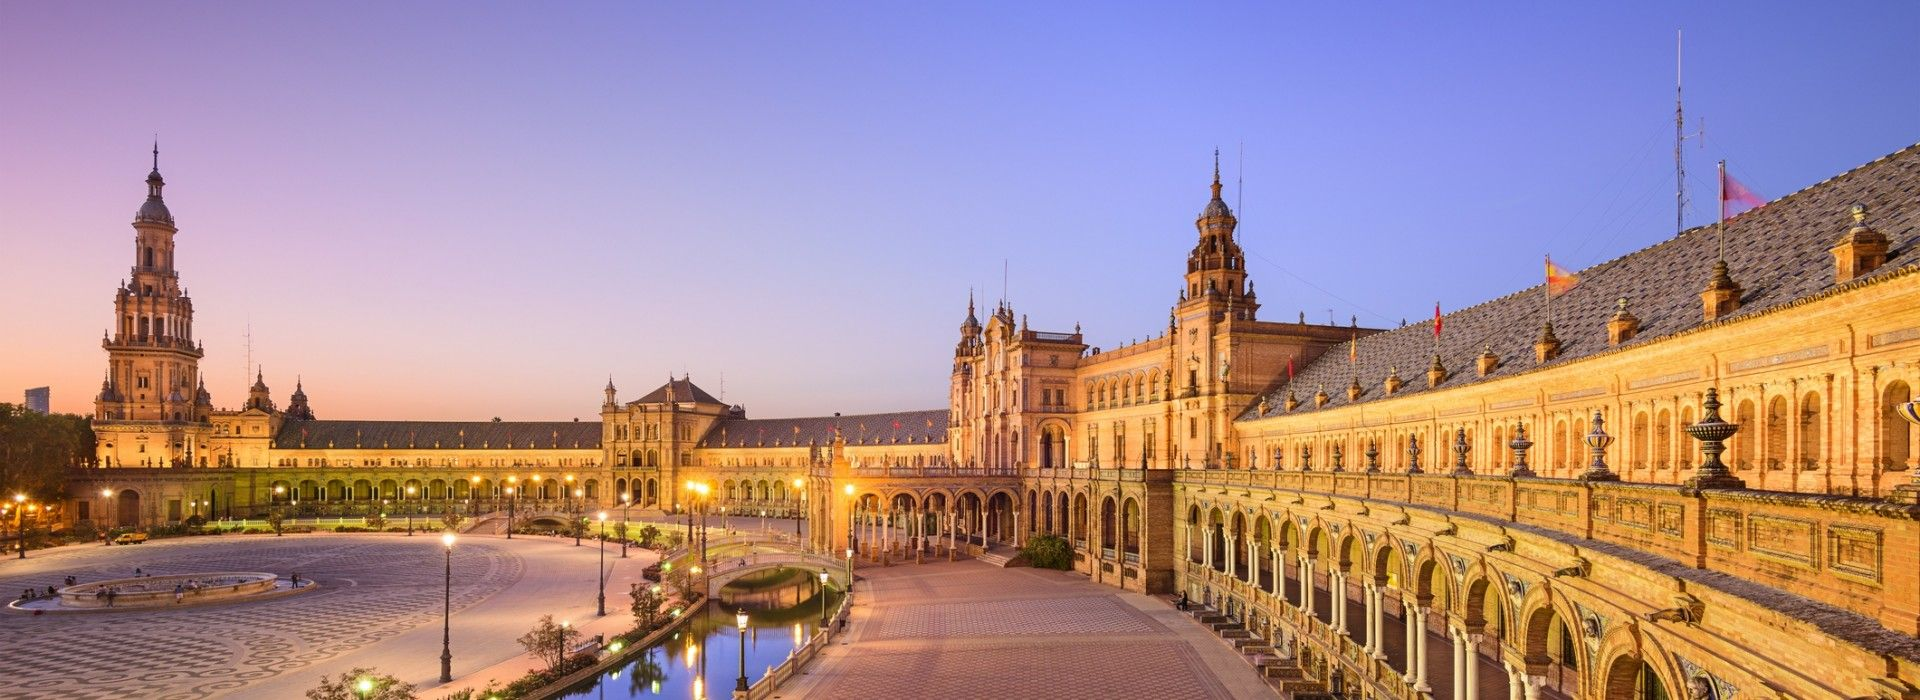 Sightseeing, attractions, culture and history Tours in Southern Spain